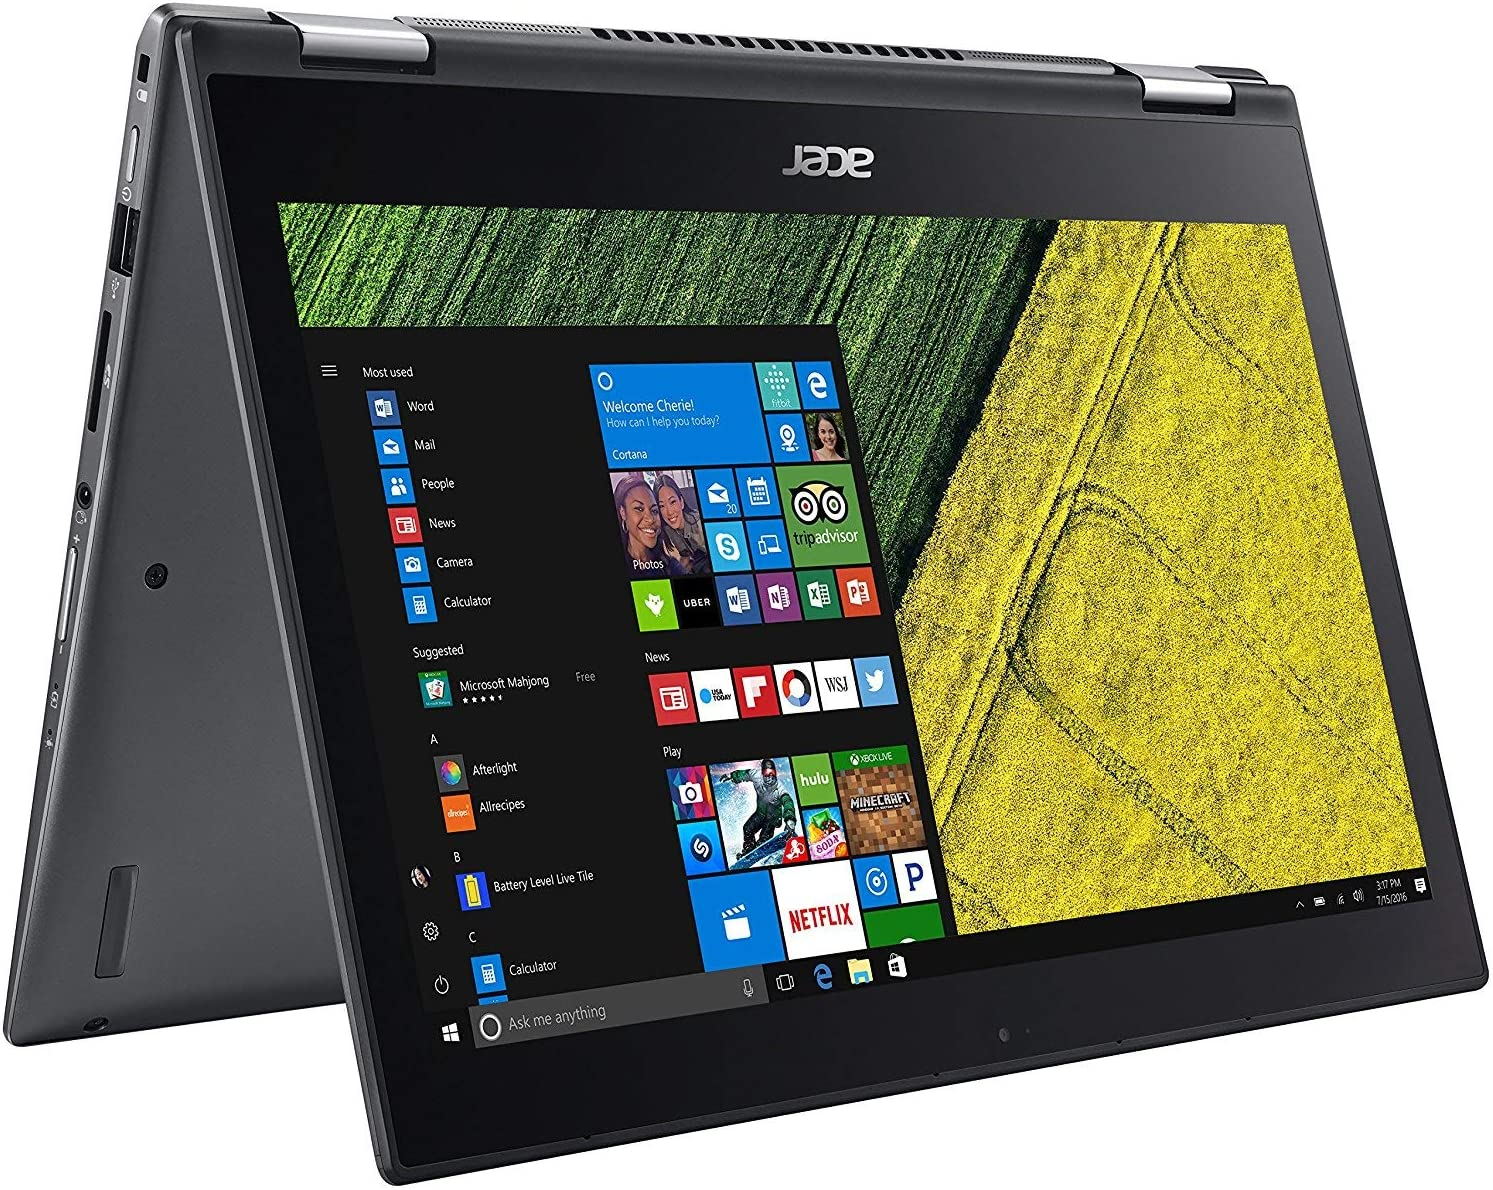 Acer Spin 5 SP513-52N Touch 2-1 Laptop 8th Gen. Intel Quad Core i7 up to 4GHz 8GB 256GB SSD 13.3in Full HD Fingerprint Reader Windows Ink HDMI Backlit Keyboard Webcam (Renewed)